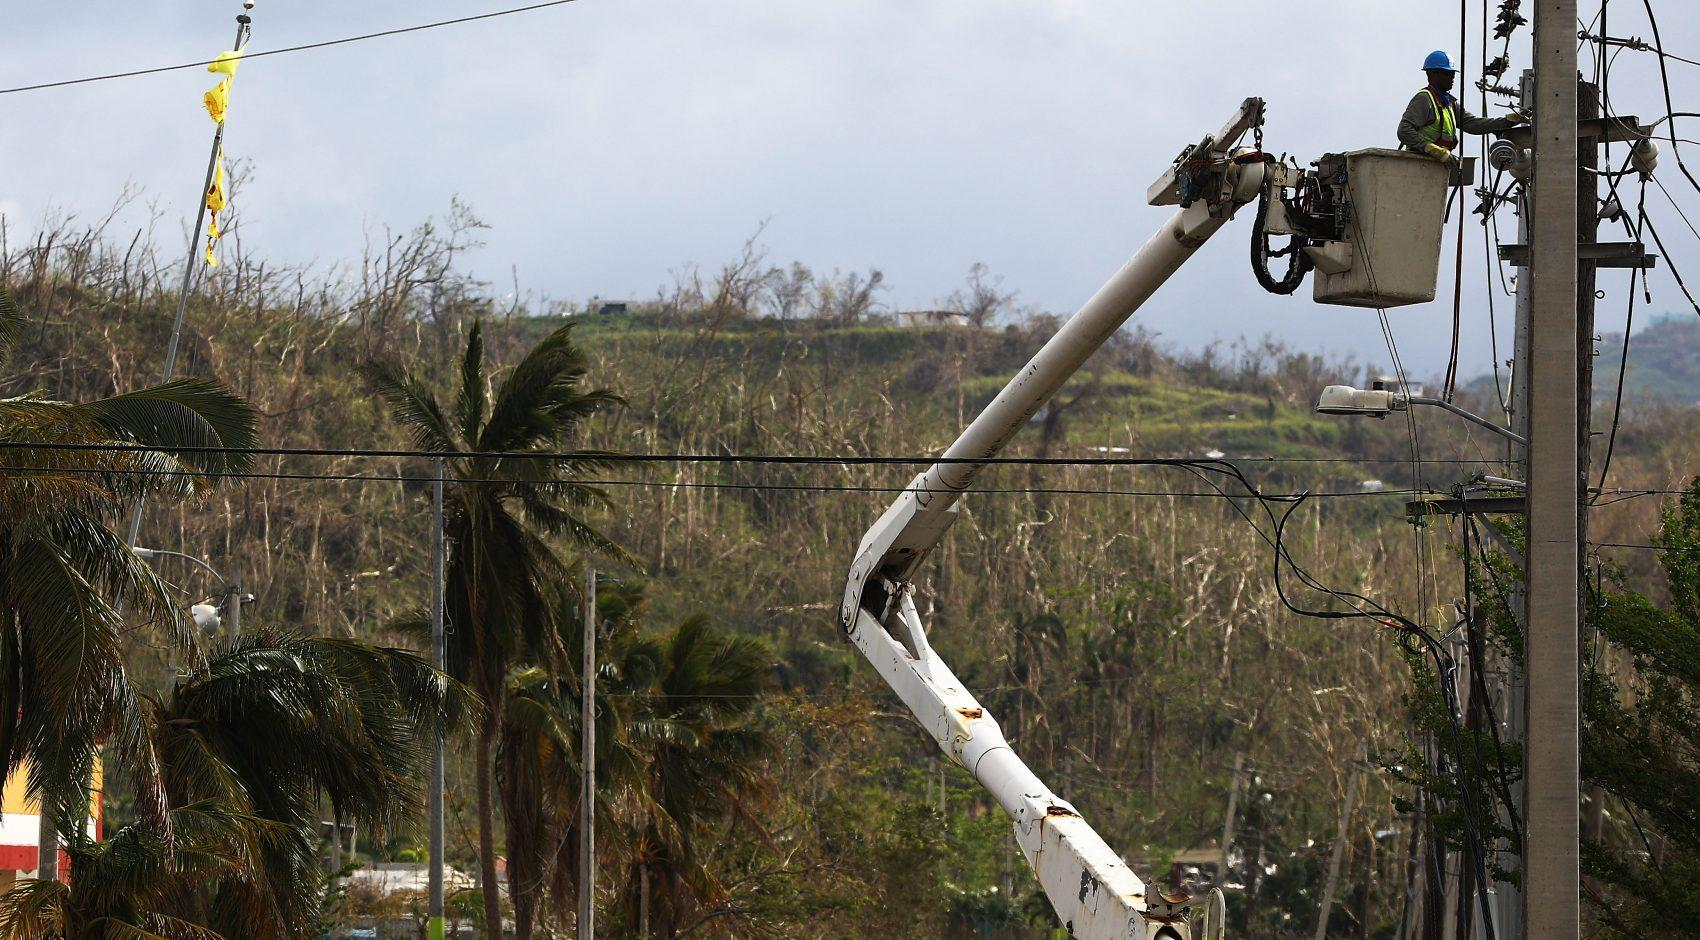 Puerto Rico gov. requests audit into contract awarded to tiny energy company